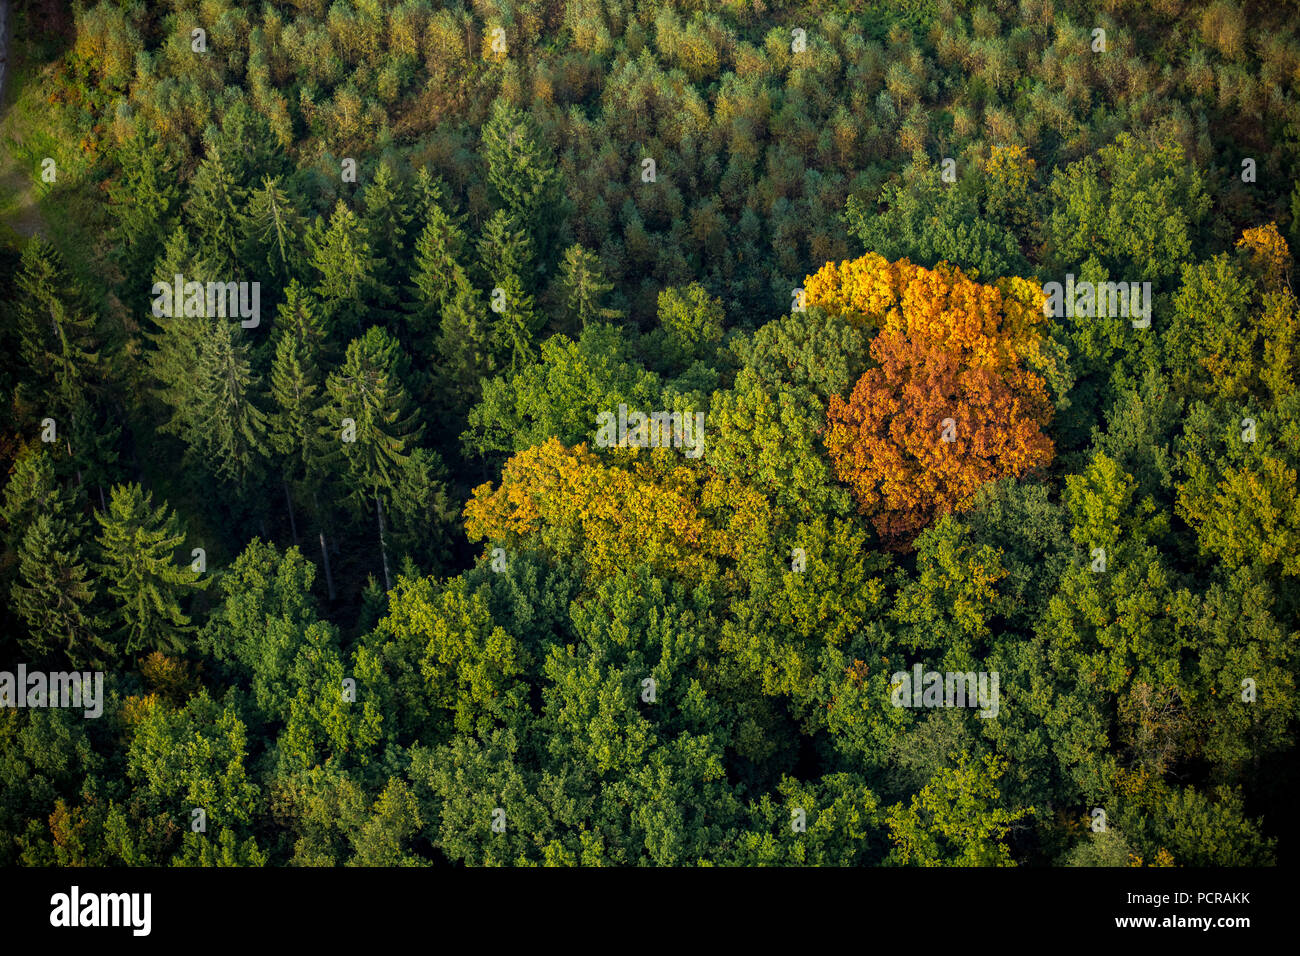 Autumn leaves, autumn forest in bright colors in the Arnsberg forest near Meschede, Meschede, Sauerland, North Rhine-Westphalia, Germany - Stock Image